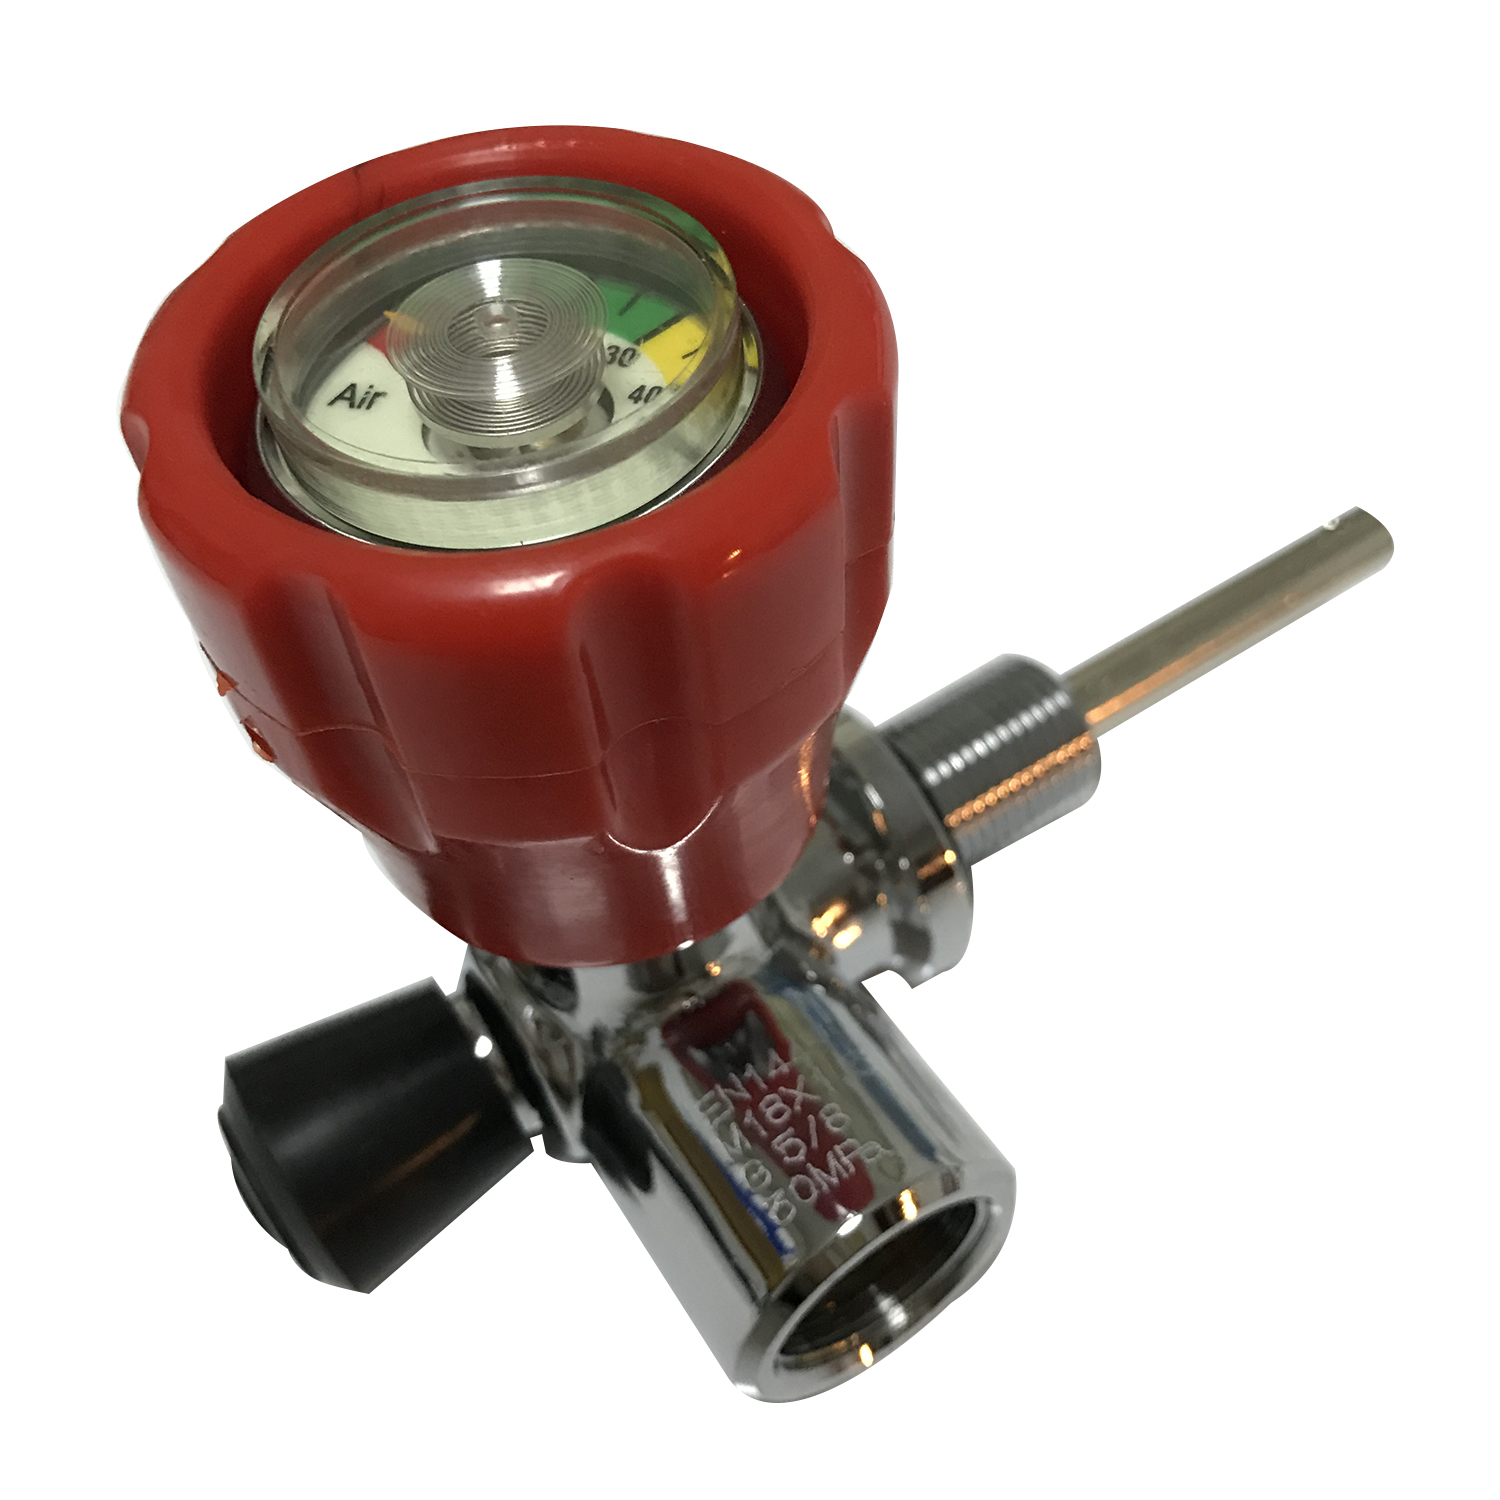 AC911 Scuba Pcp Valve 4500 Psi M18*1.5 Thread G5/8 Output For Airforce Condor Diving Tank High Pressure Cylinder Gas Station